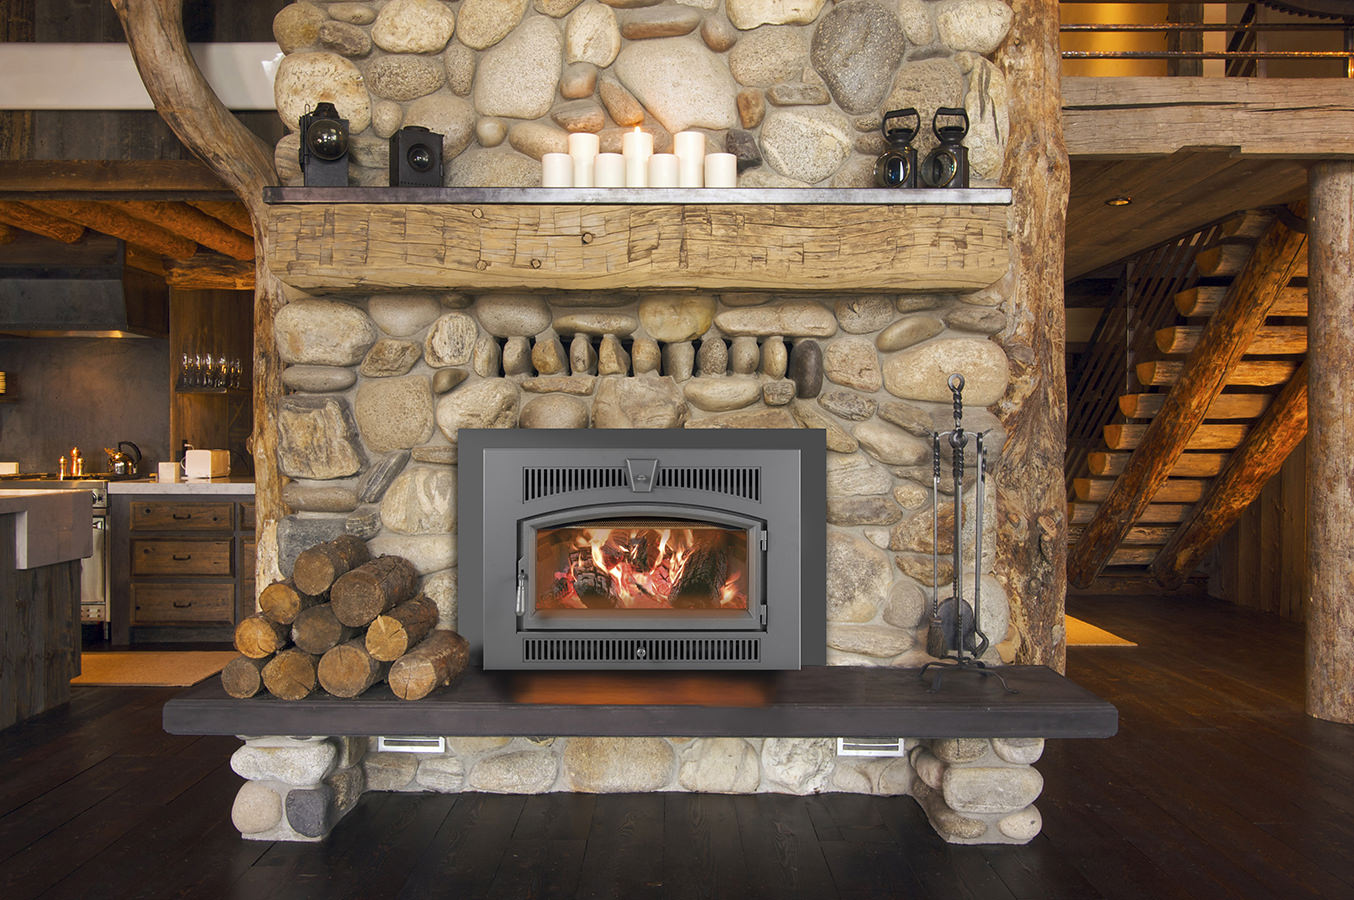 The Lopi Large Flush Hybrid-Fyre wood insert is capable of heating up to 2